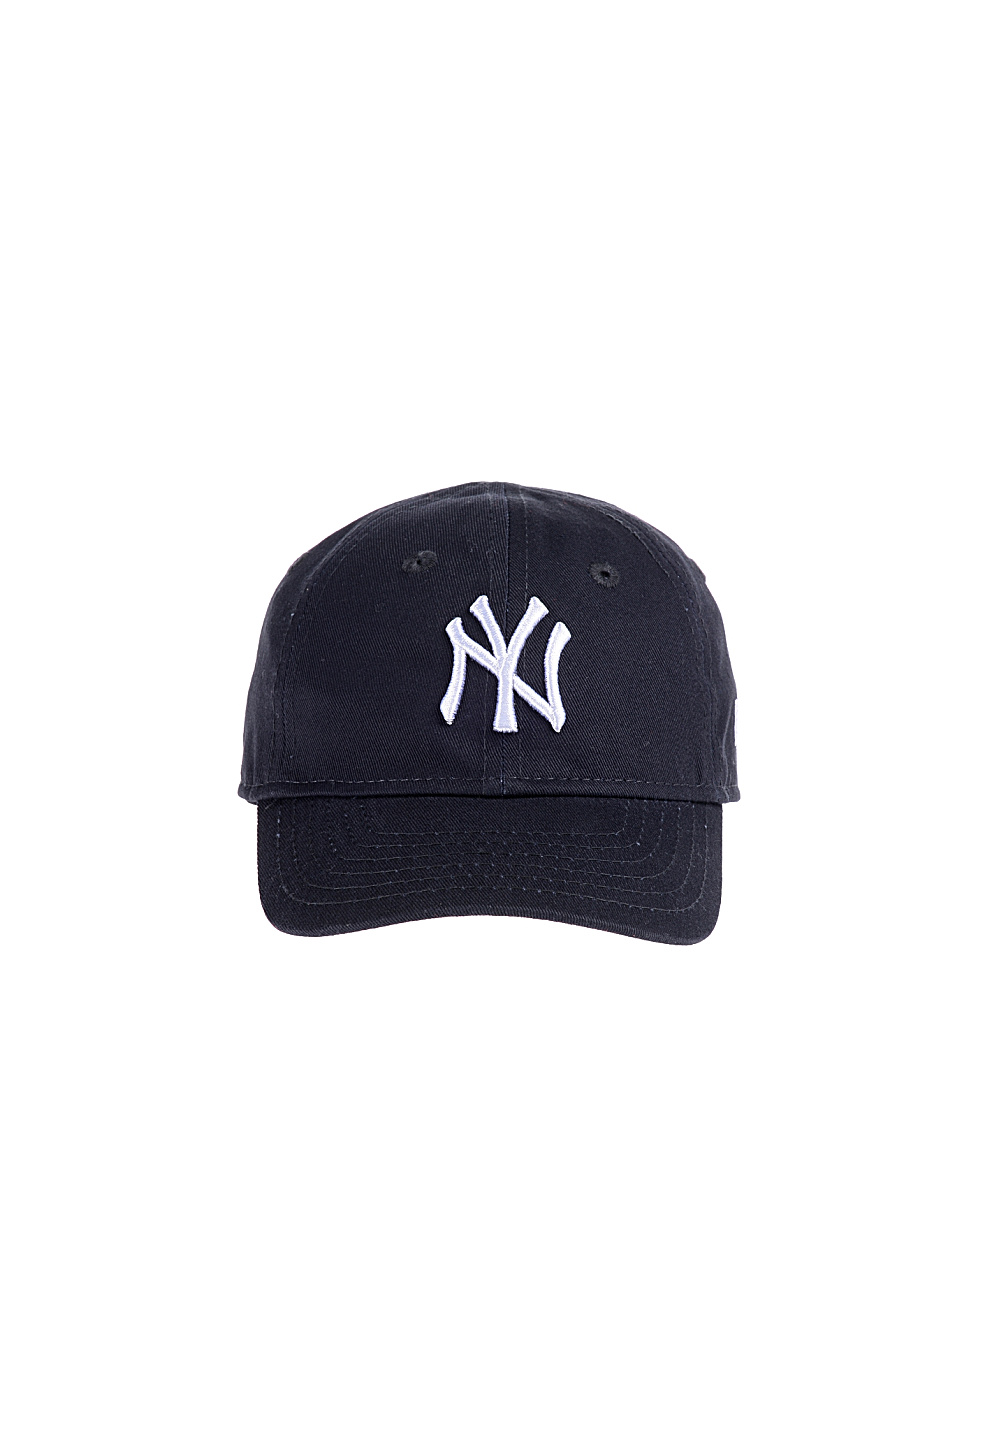 e5348cd534ff3 Next. This product is currently out of stock. NEW Era. My First 9Forty New  York Yankees - Cap. €15.95